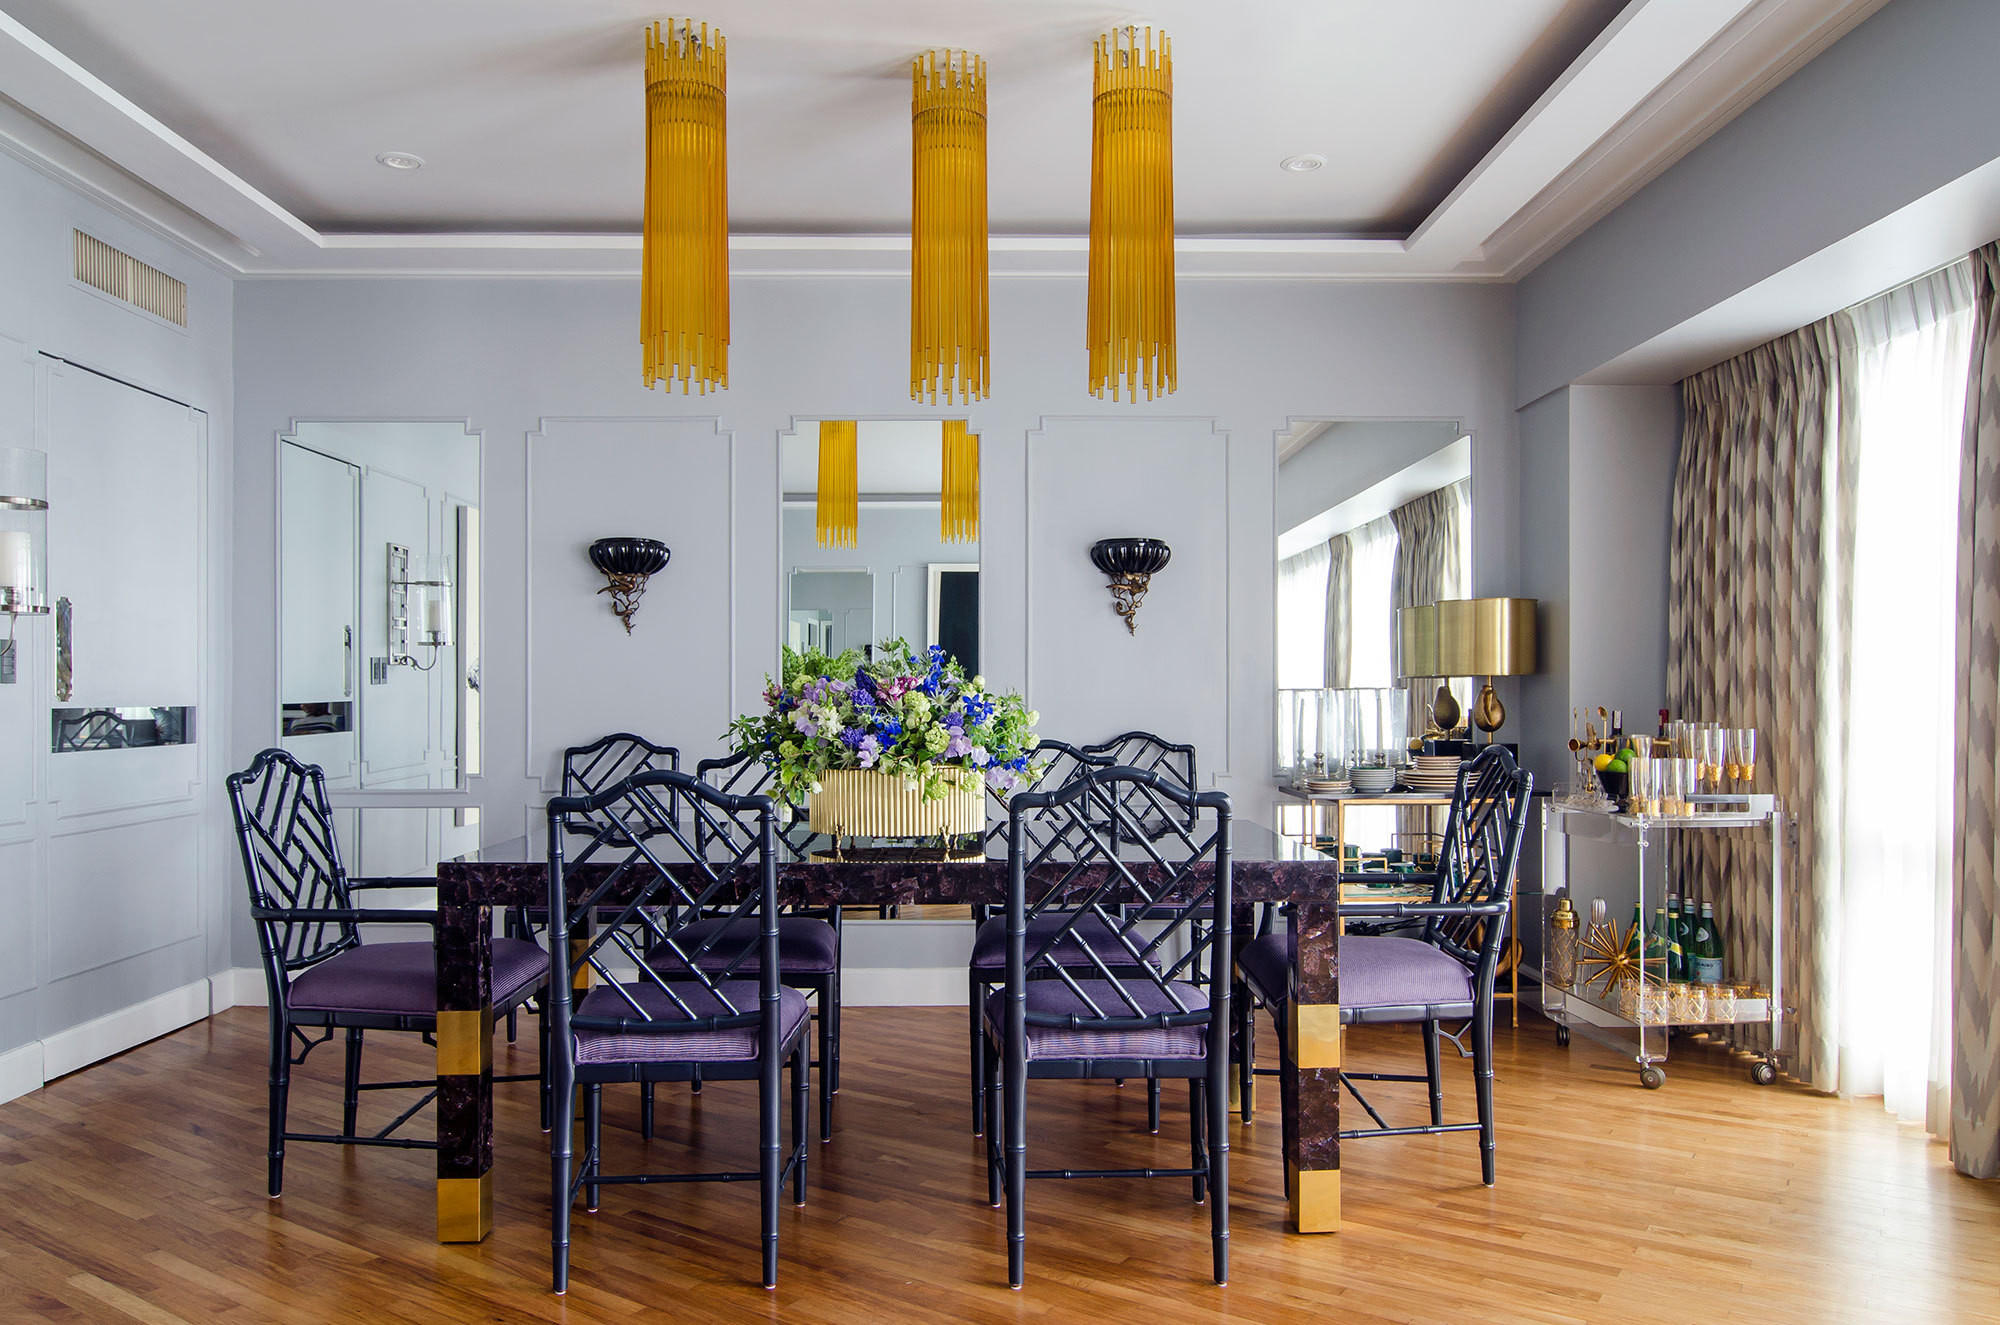 Chippendale Chairs Surrounded A Brass And Shell Table From Carreonu0027s  Collection. The Designer